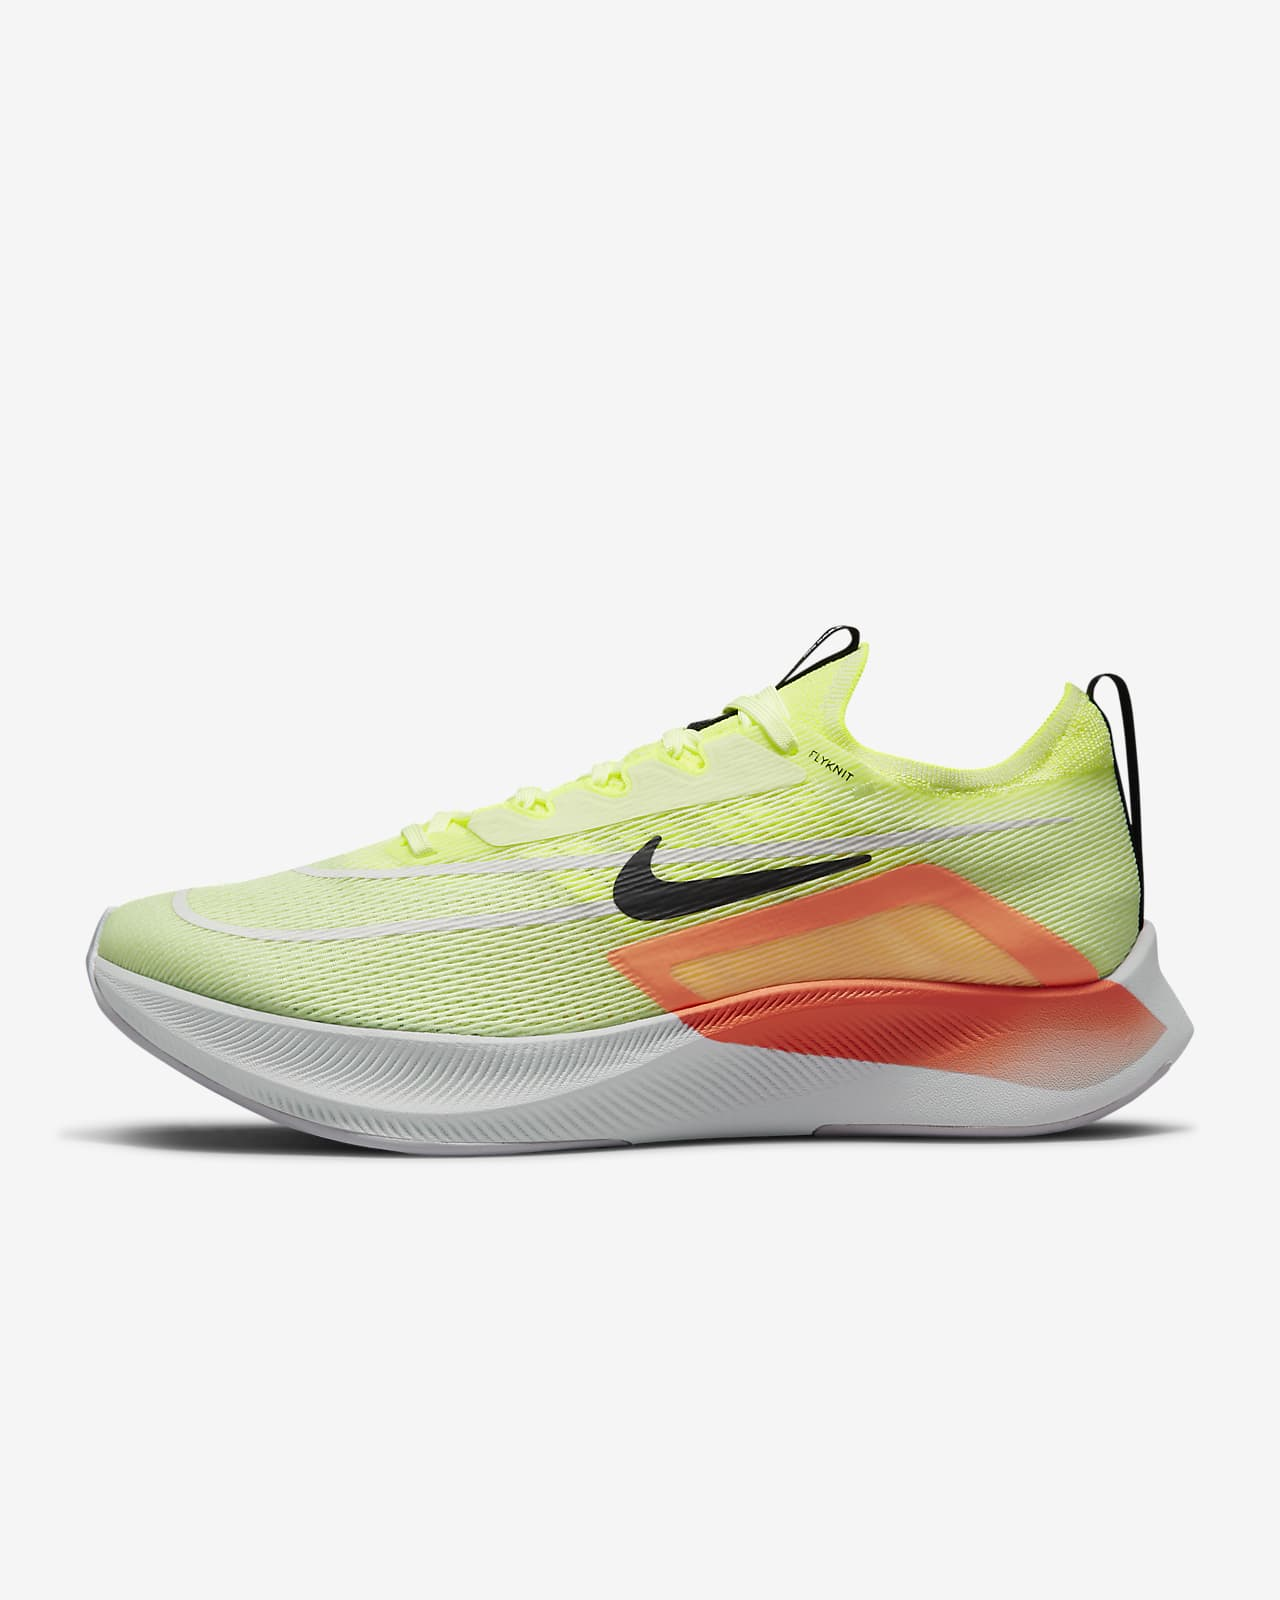 Chaussures de running sur route Nike Zoom Fly 4 pour Homme